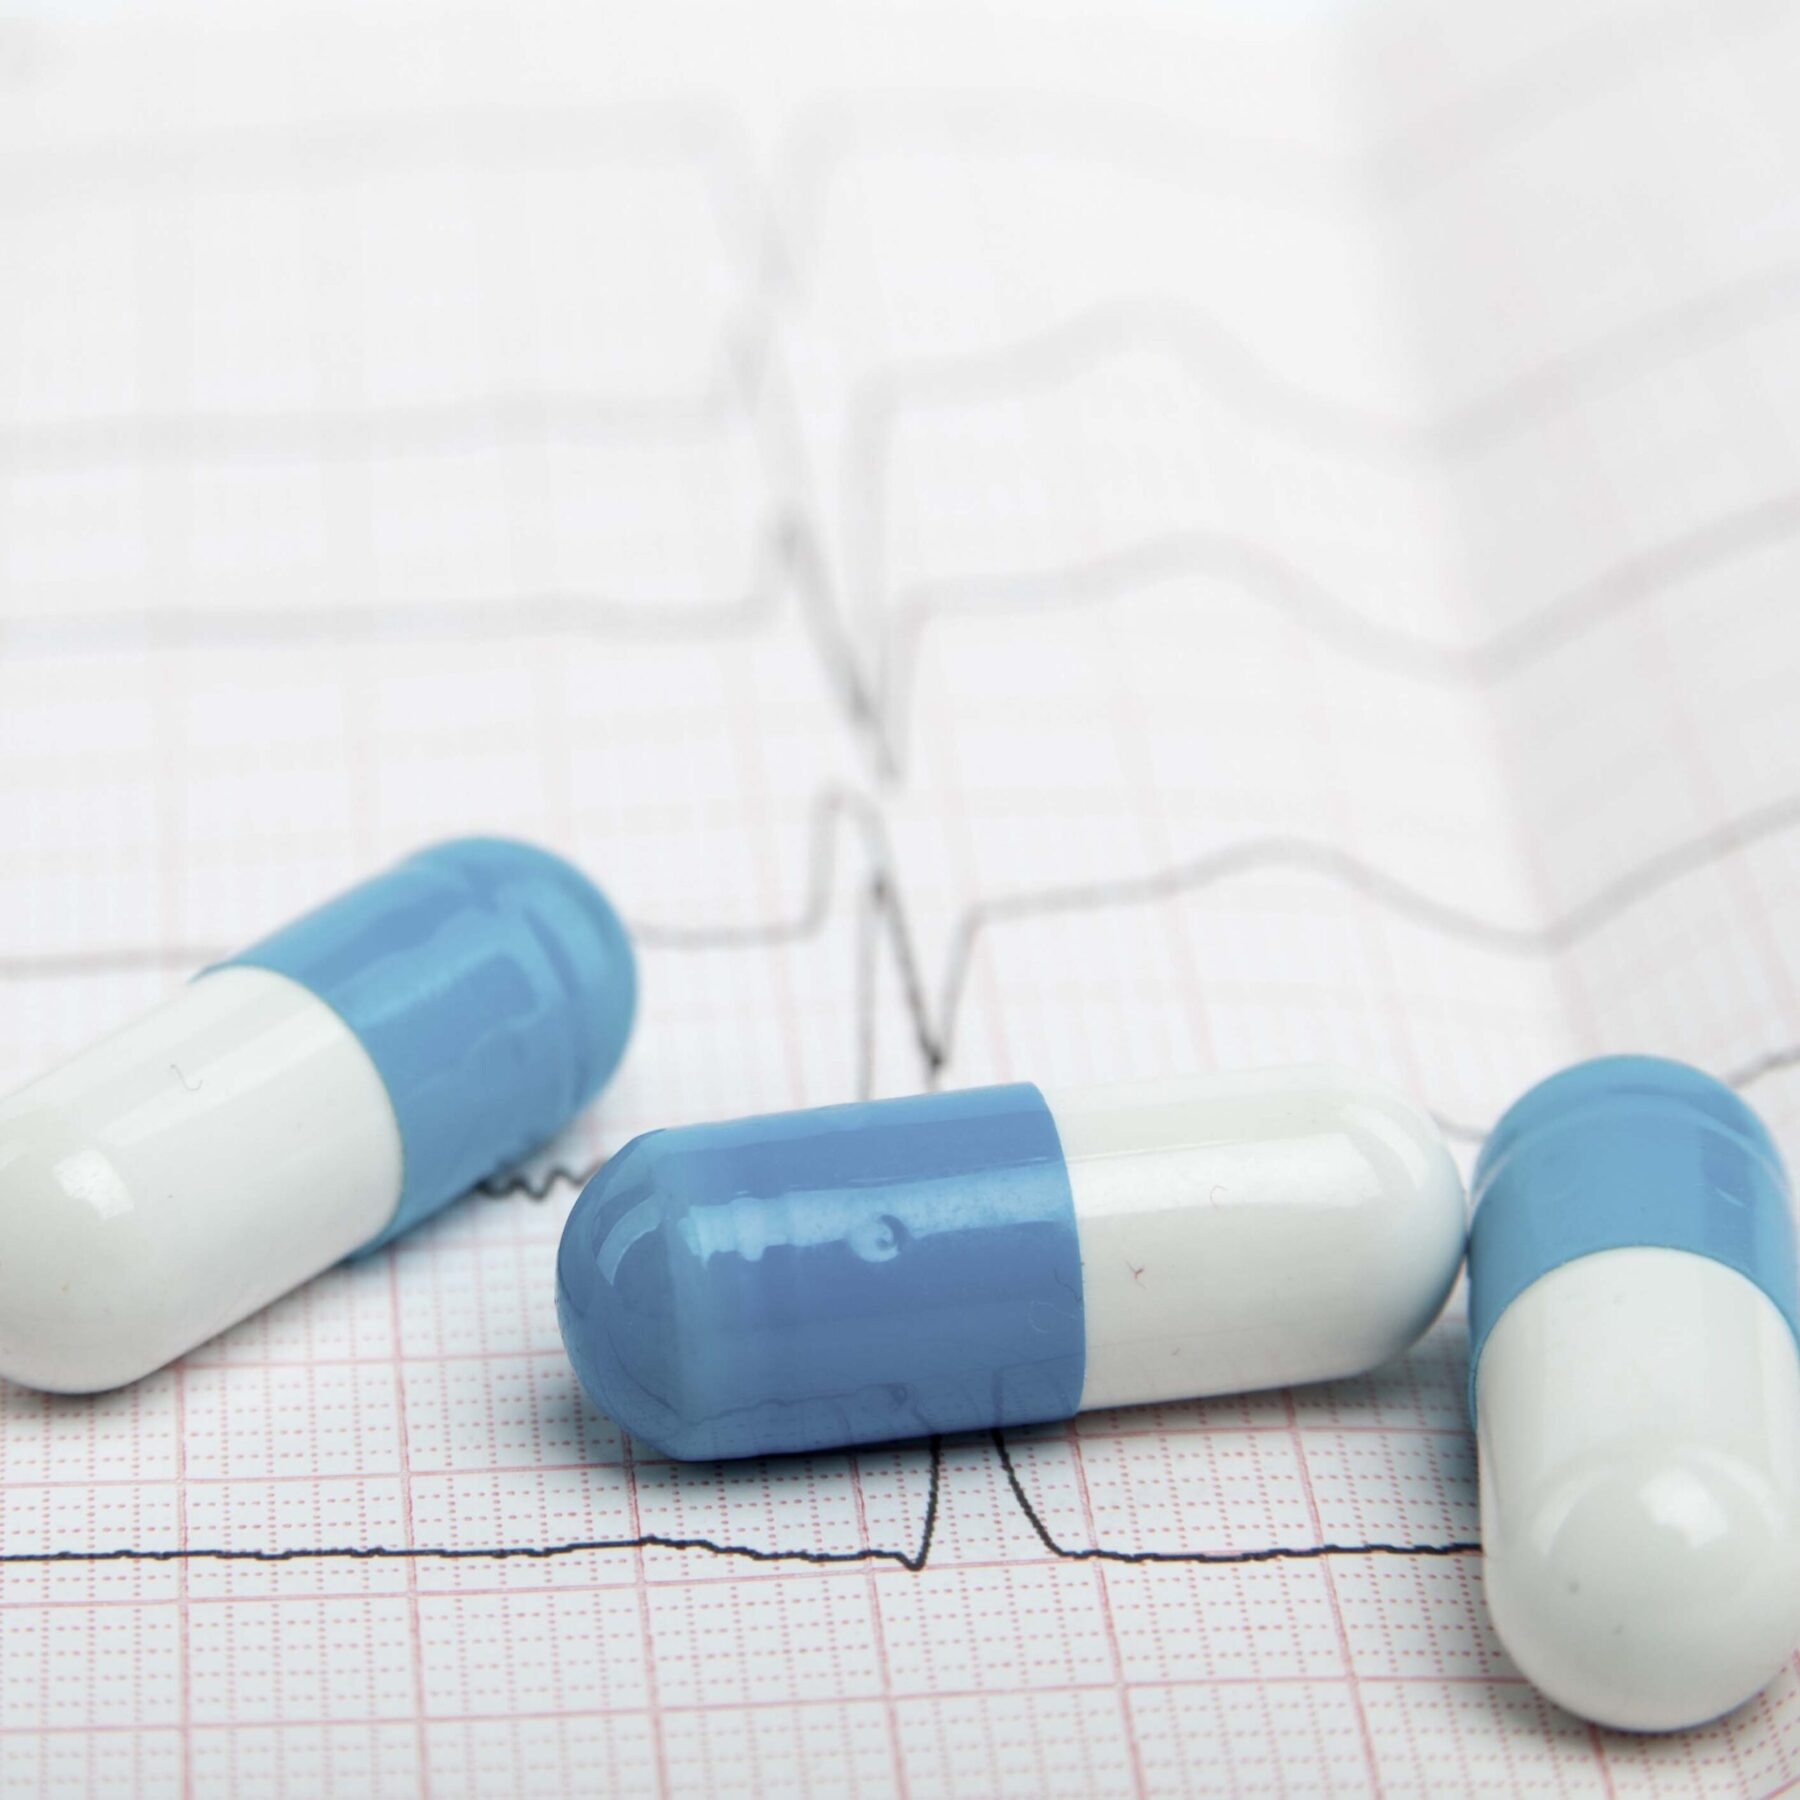 FEATURED - NSAIDs And Your Heart: How To Minimize The Risk